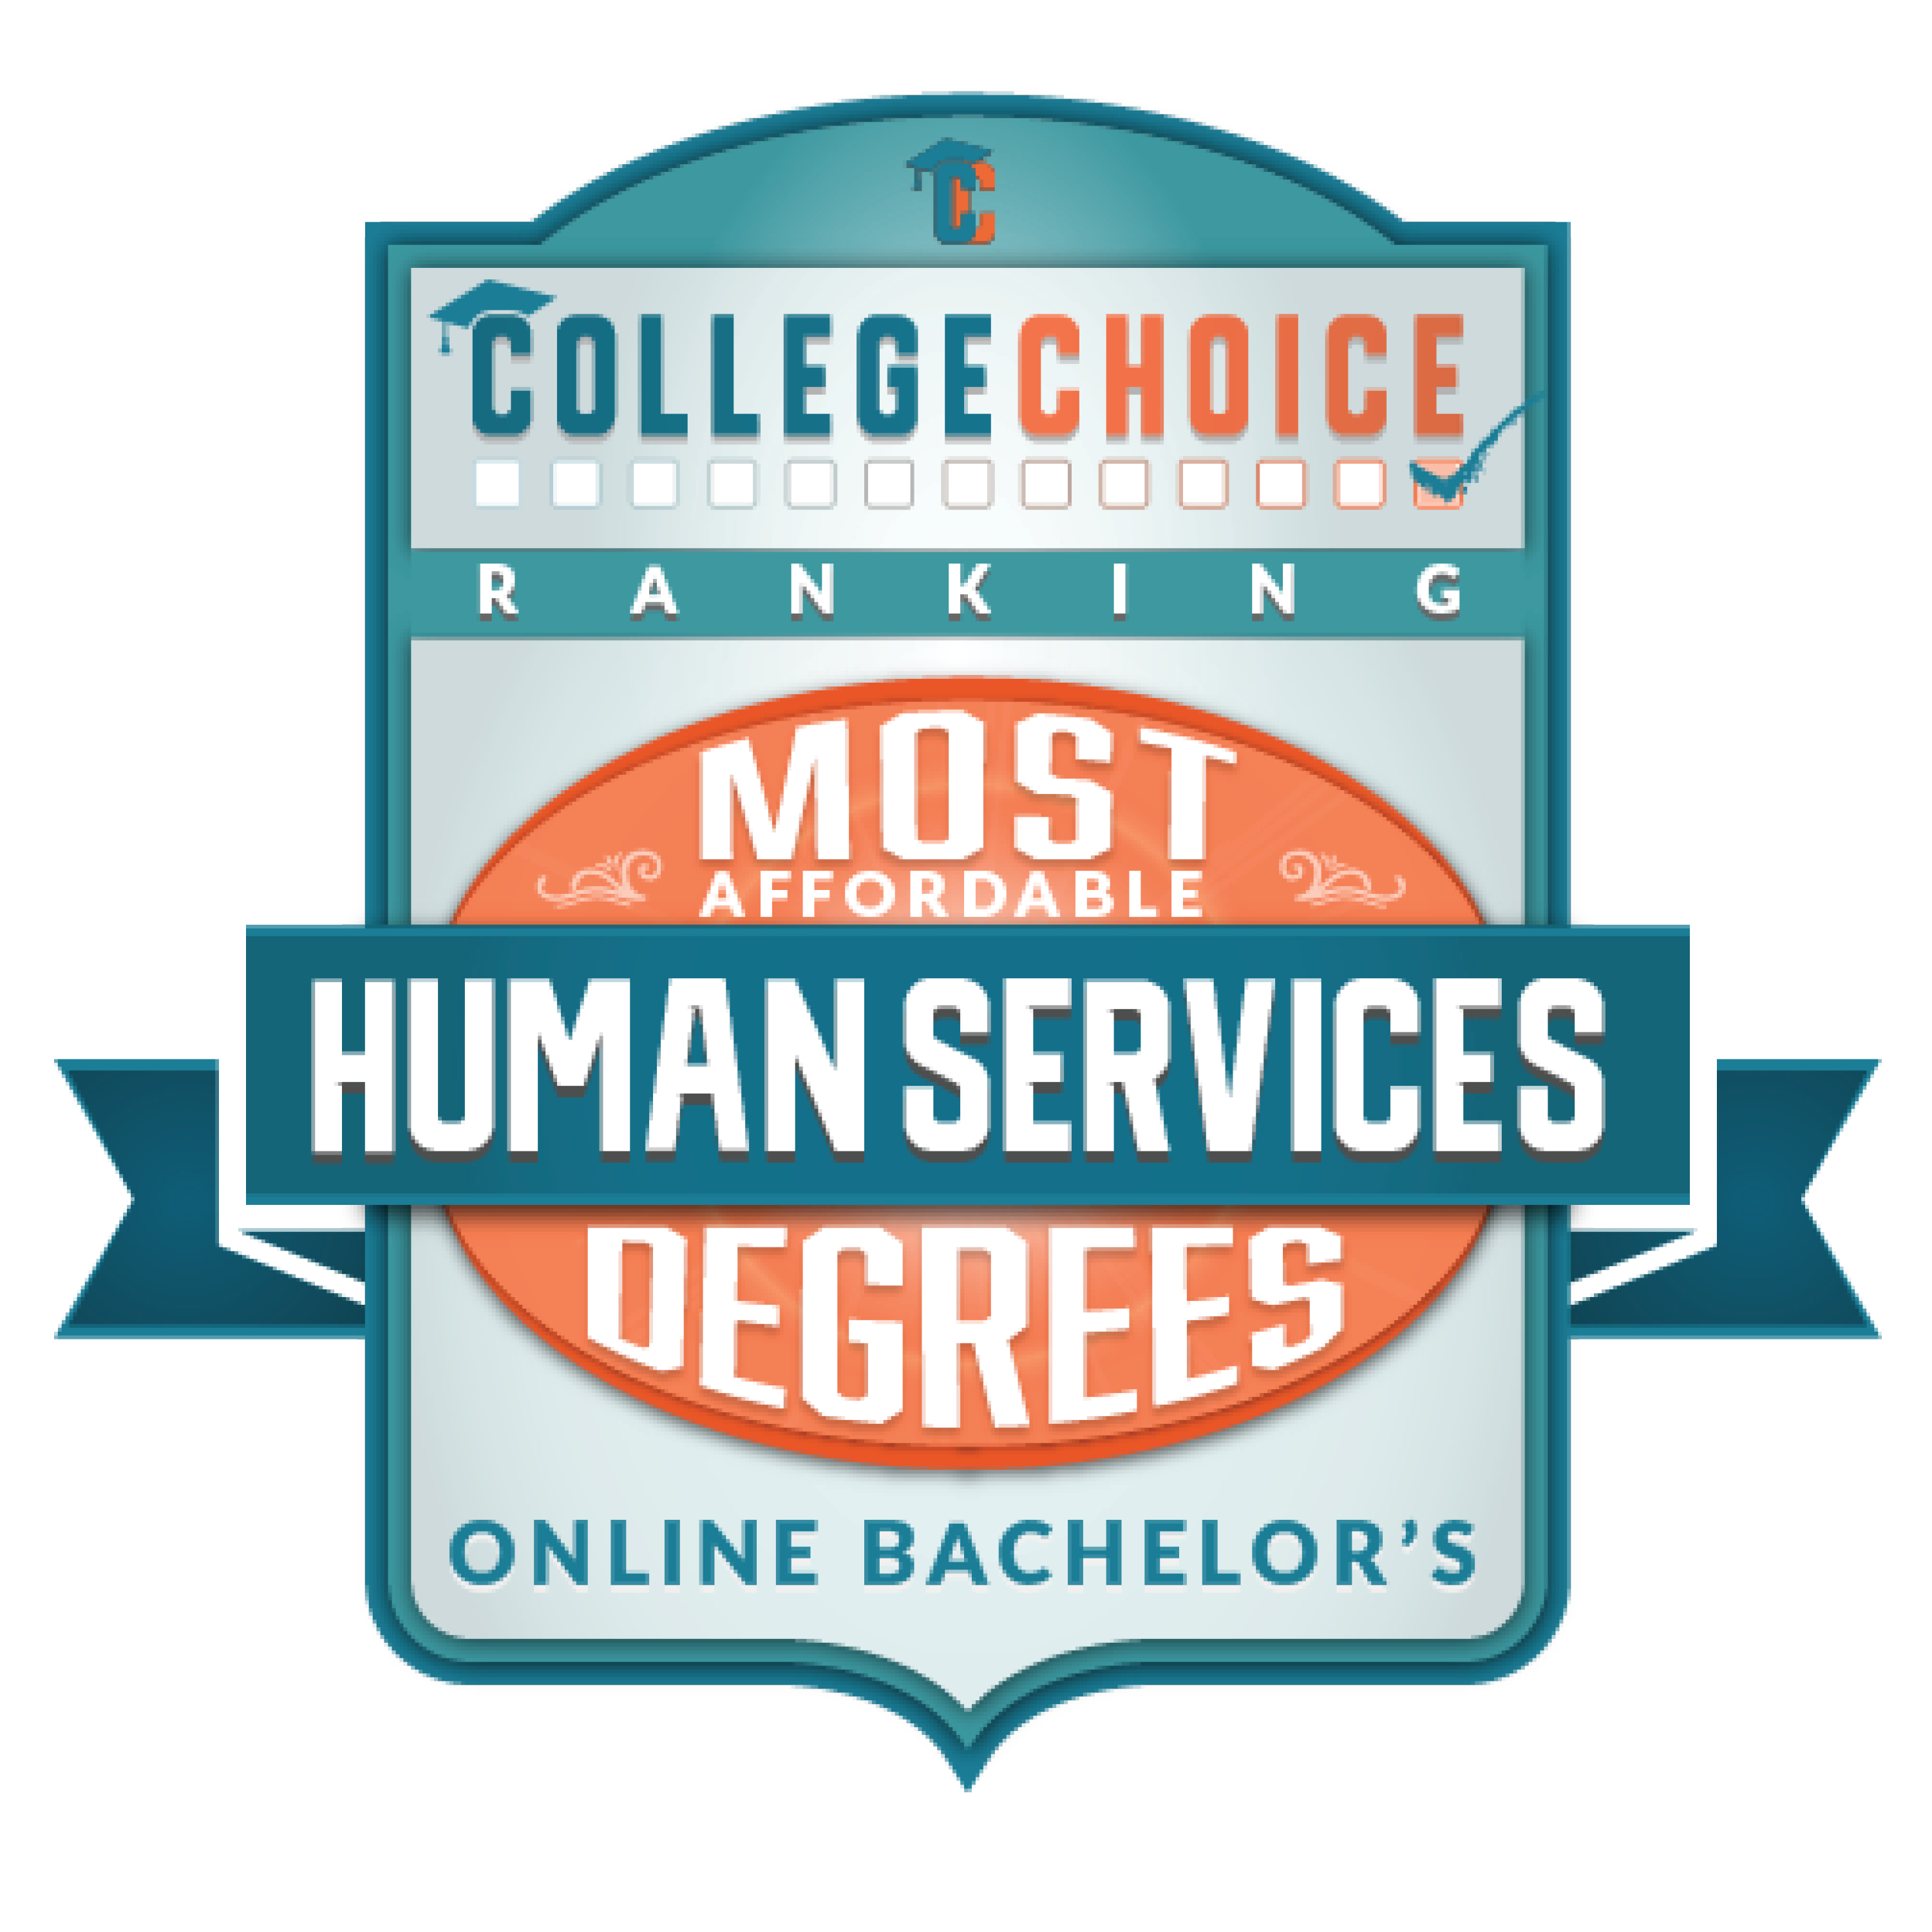 FSCJ's B.S. in Human Services Receives National Ranking